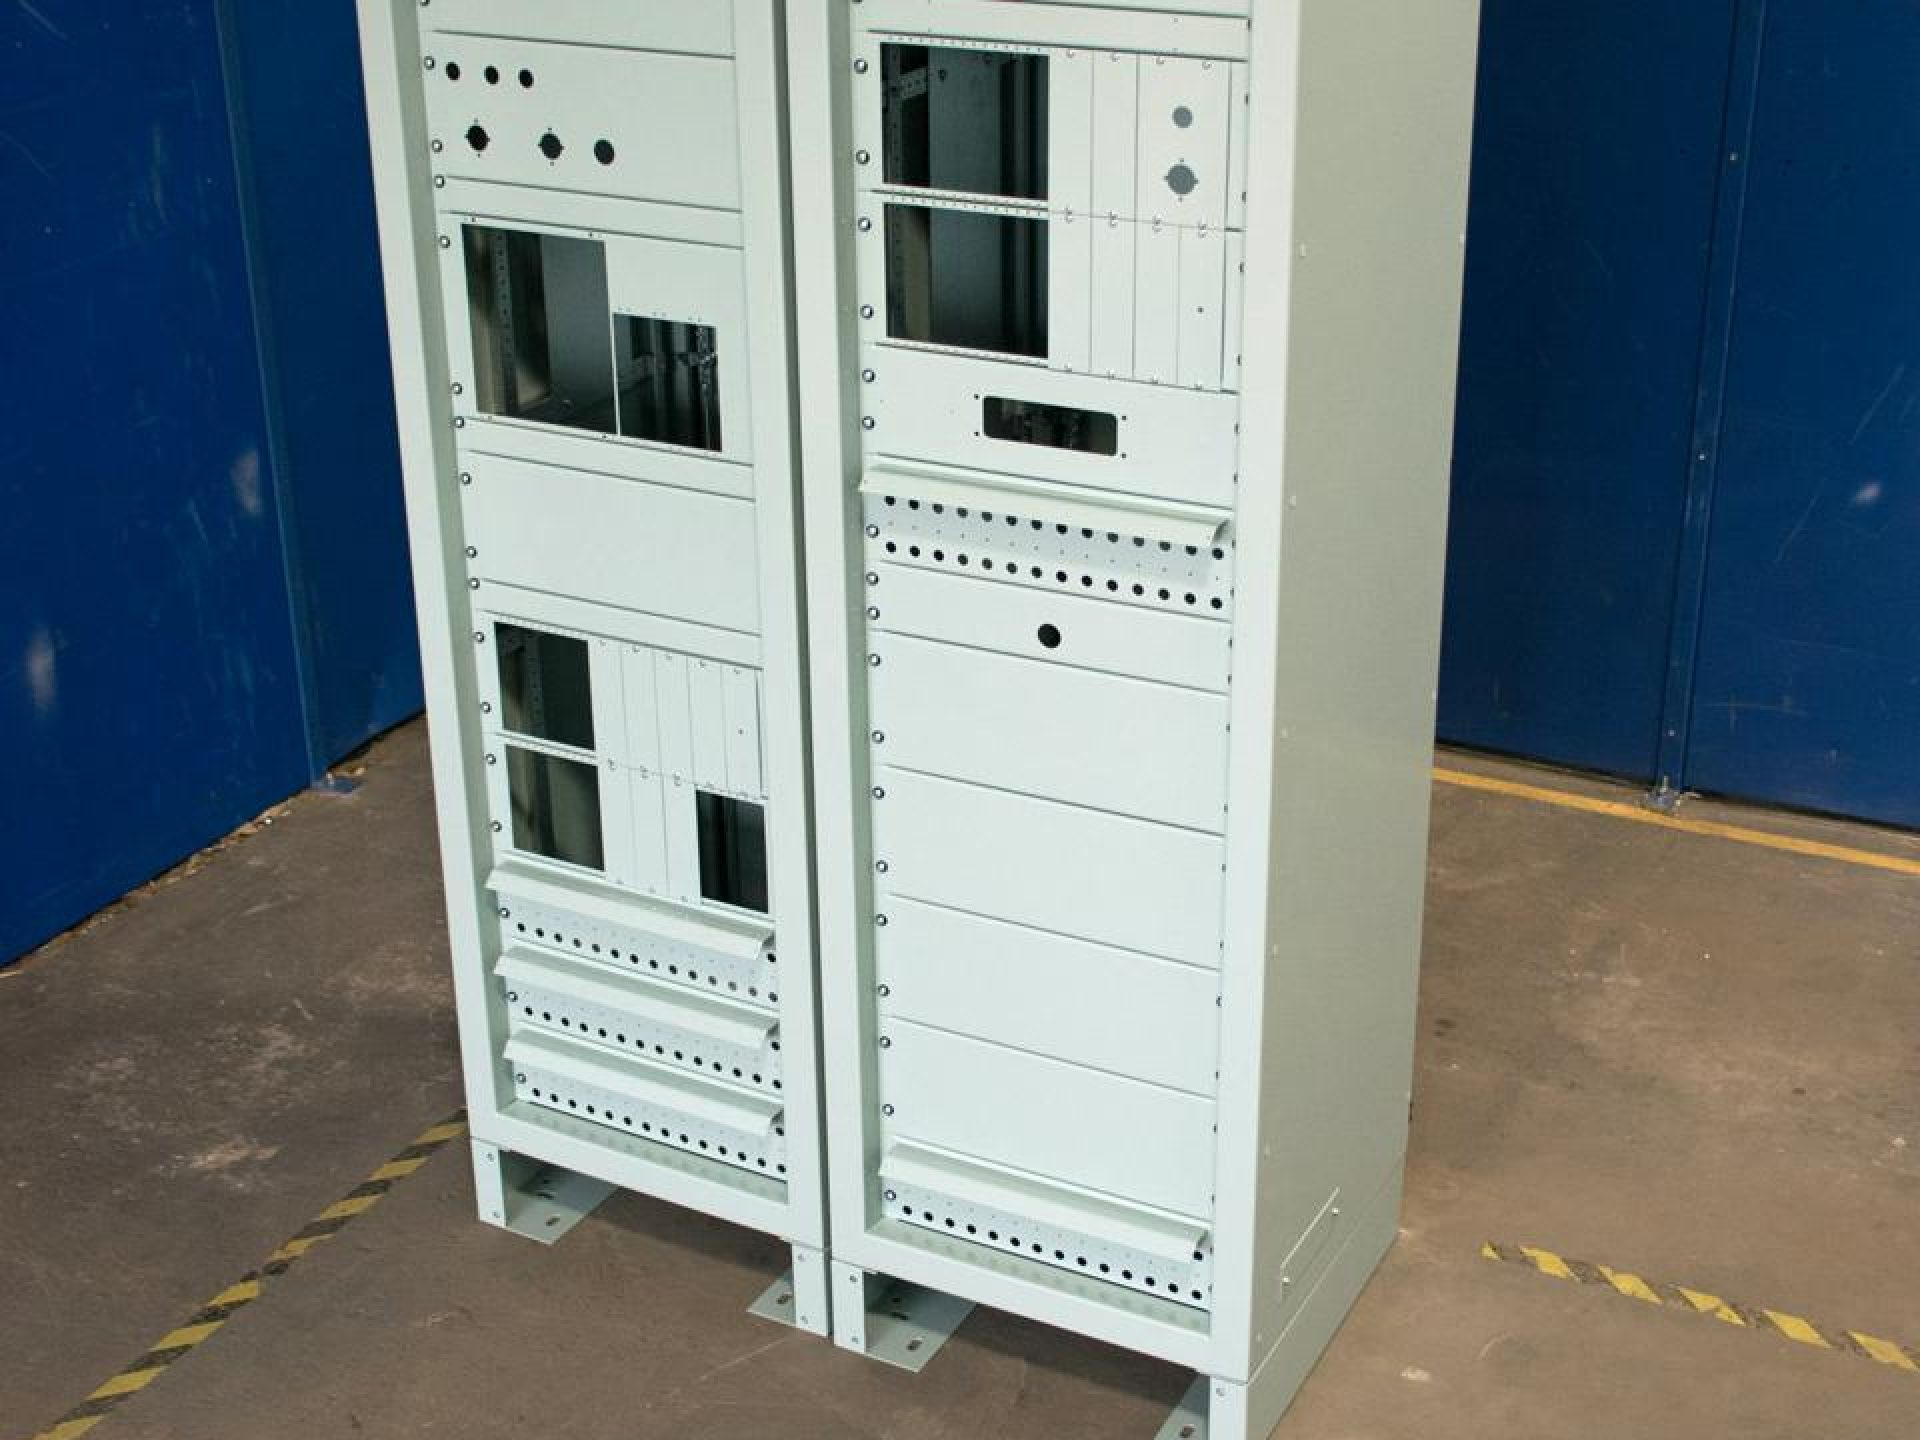 HV Protection Panel by Adams Enclosures